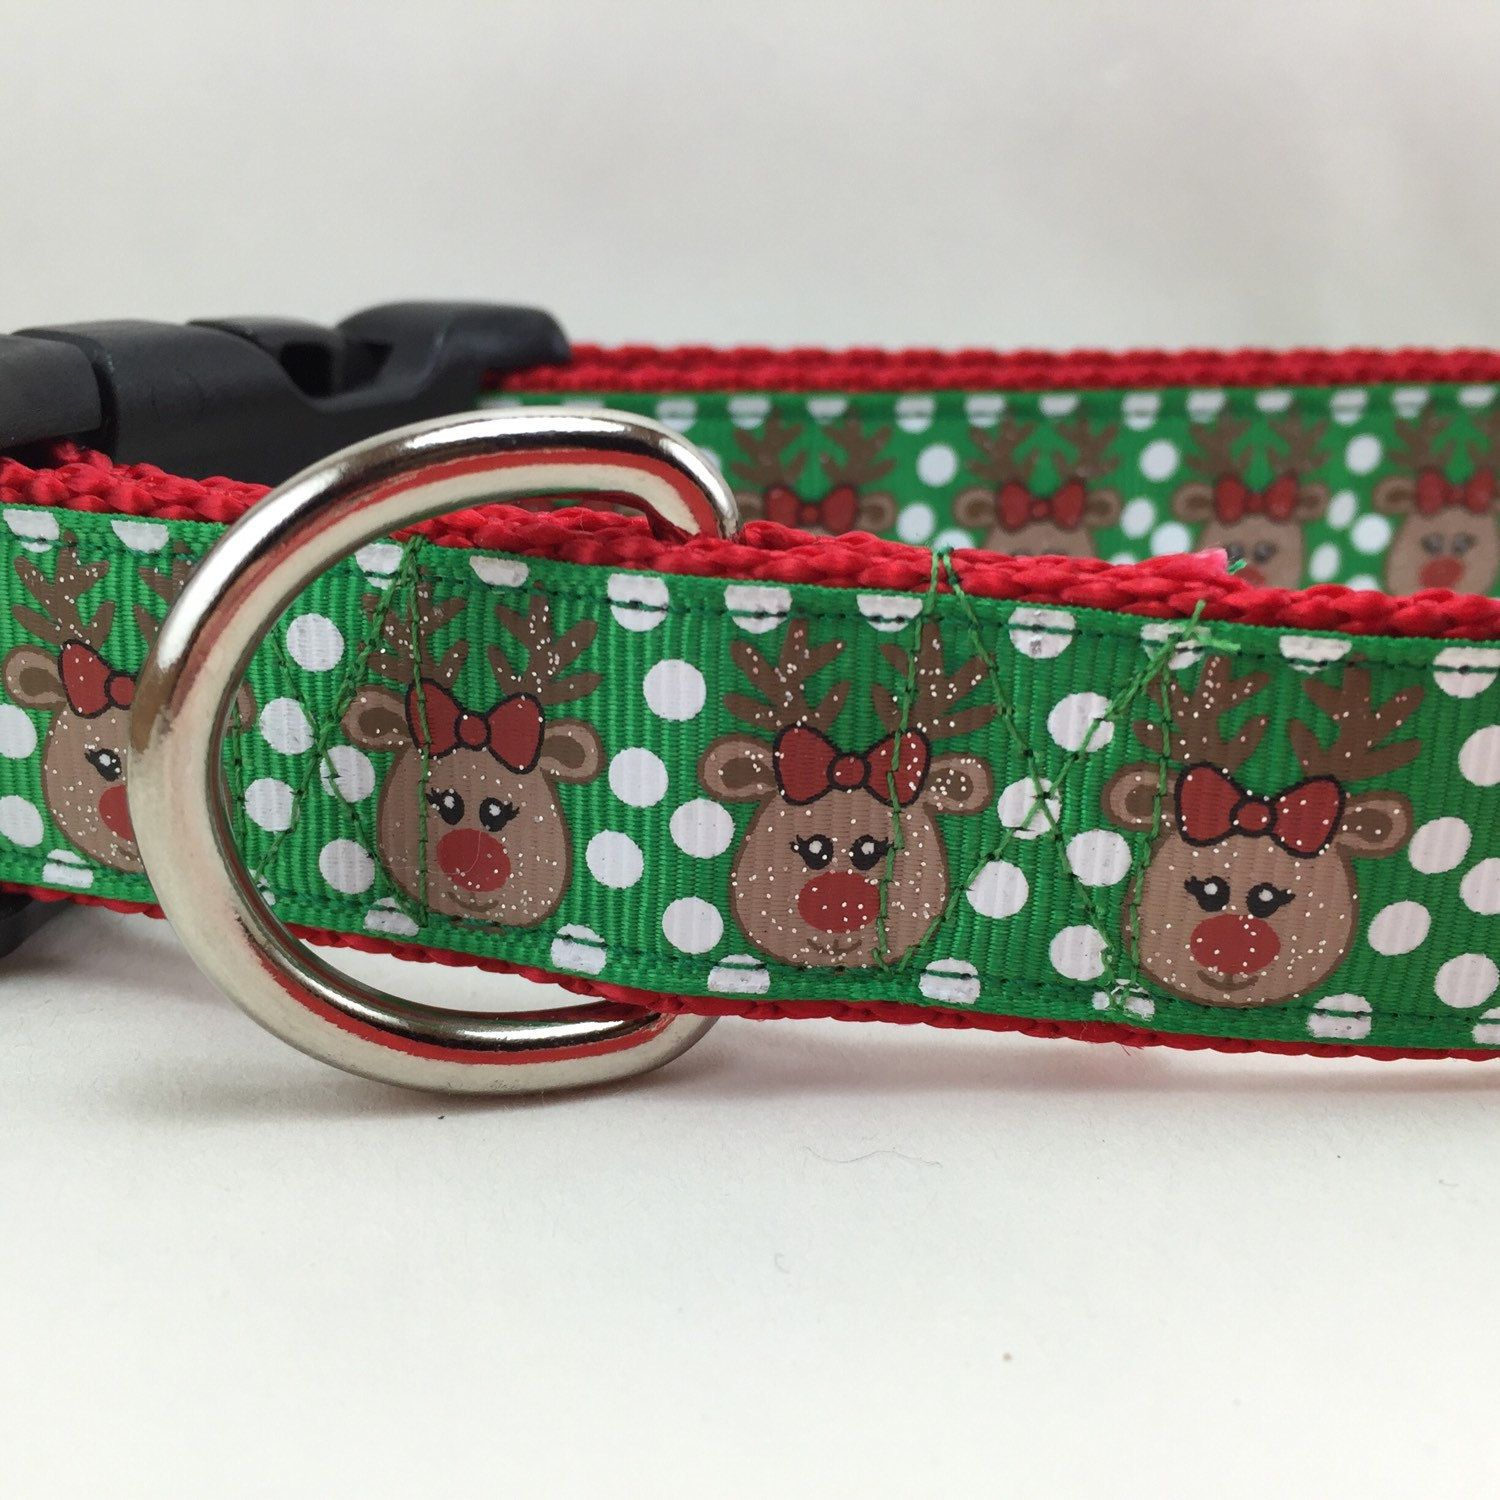 New style! Your dog needs a glittery Rudolph for Christmas